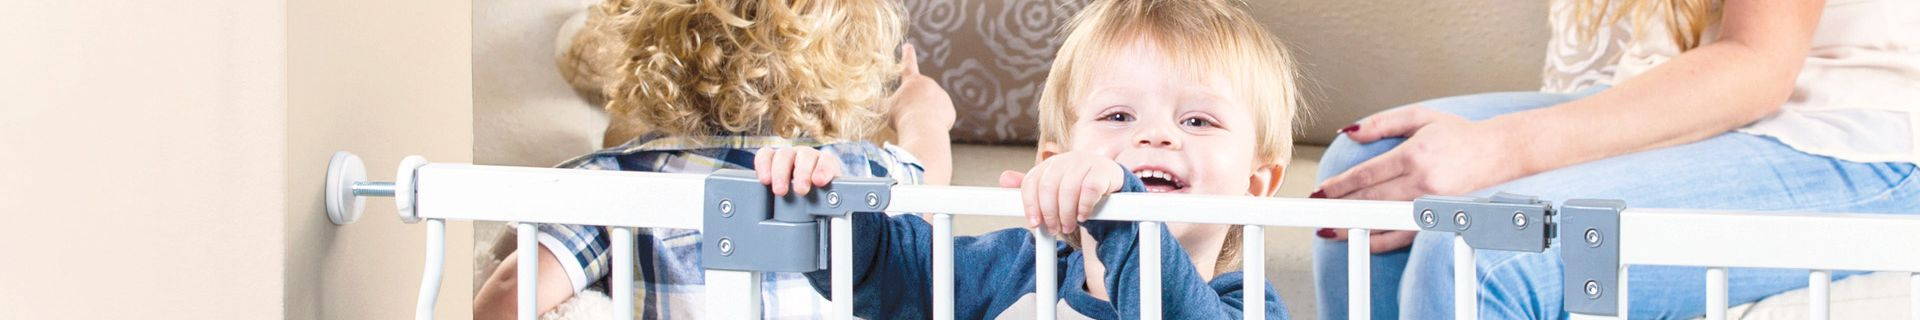 Toddler peaking over child safety gate